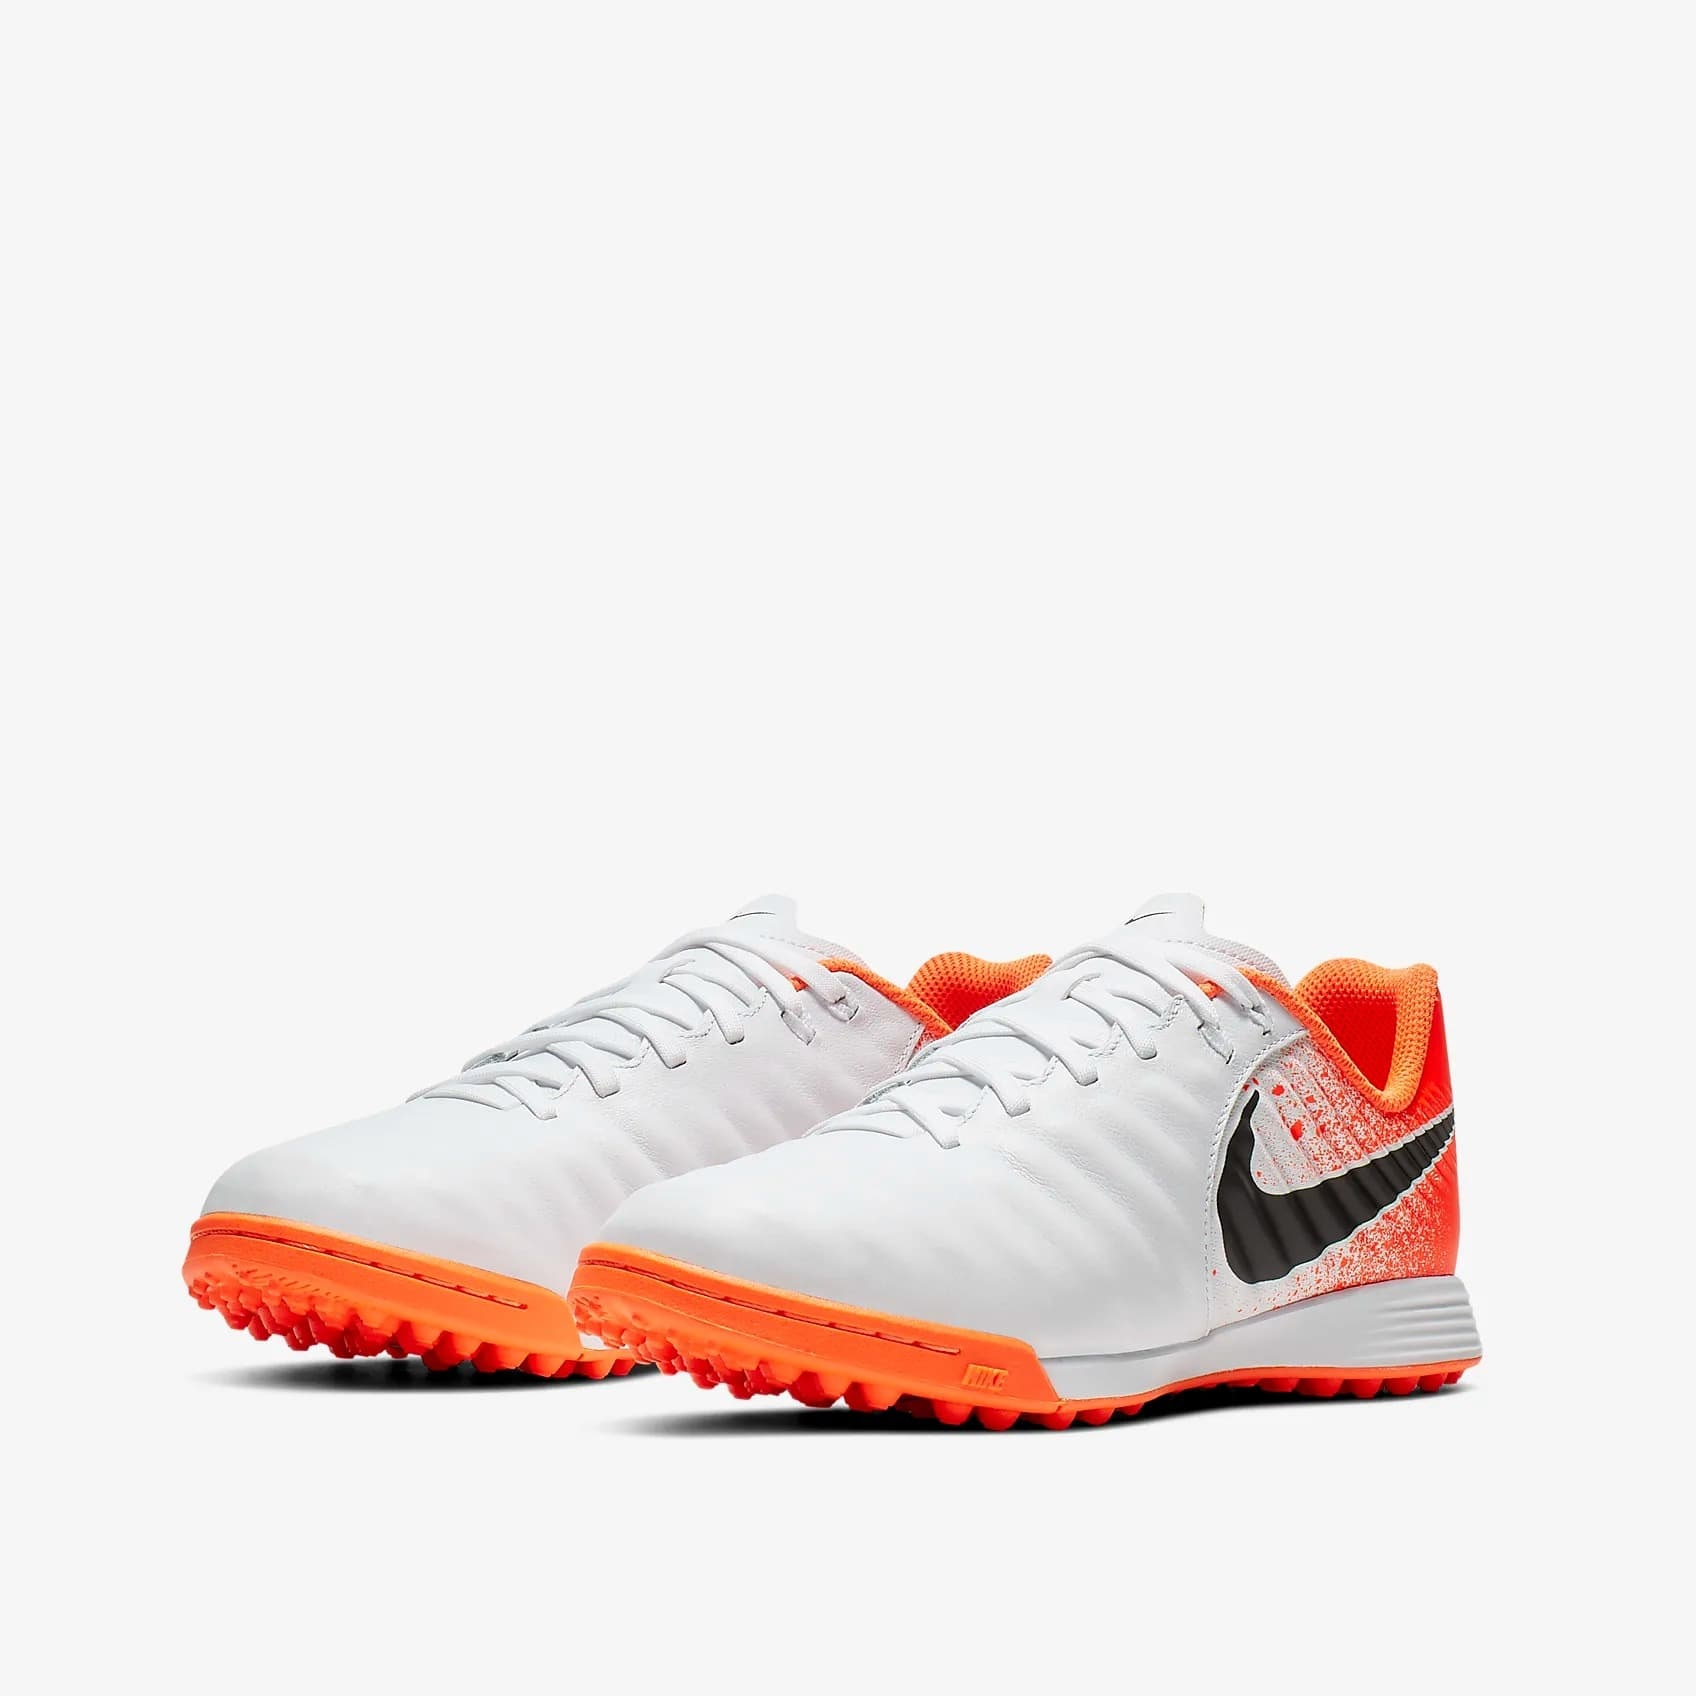 NIKE LEGENDX VII ACADEMY TF AH7259-118 JR